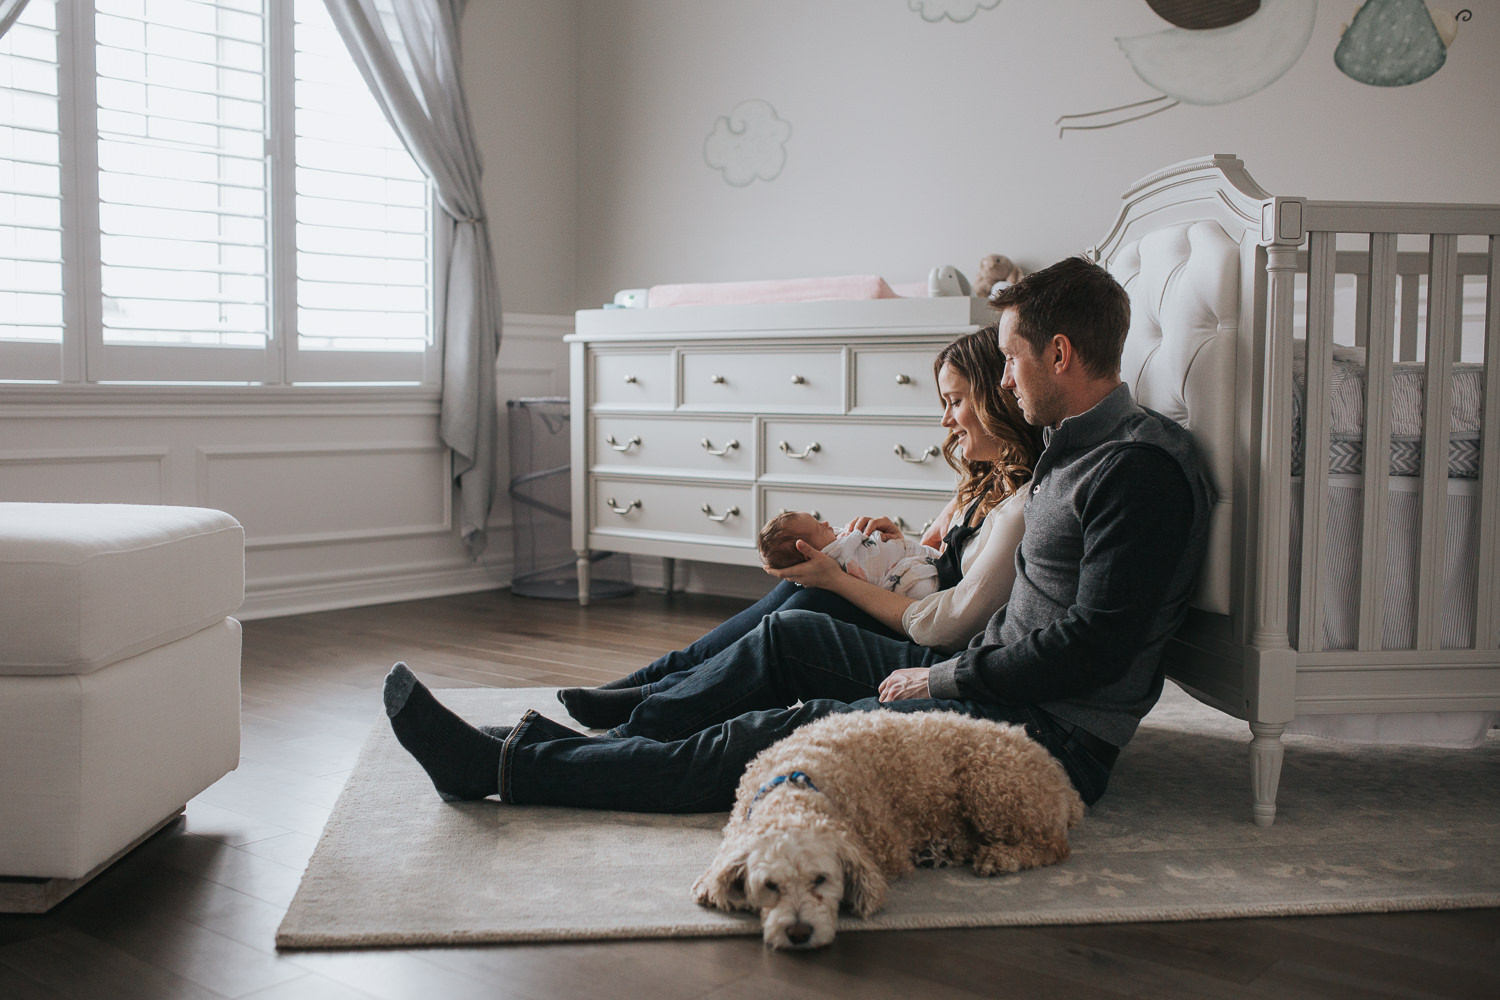 first time parents sitting on nursery floor holding 2 week old baby daughter, family dog looking on - Stouffville Lifestyle Photos